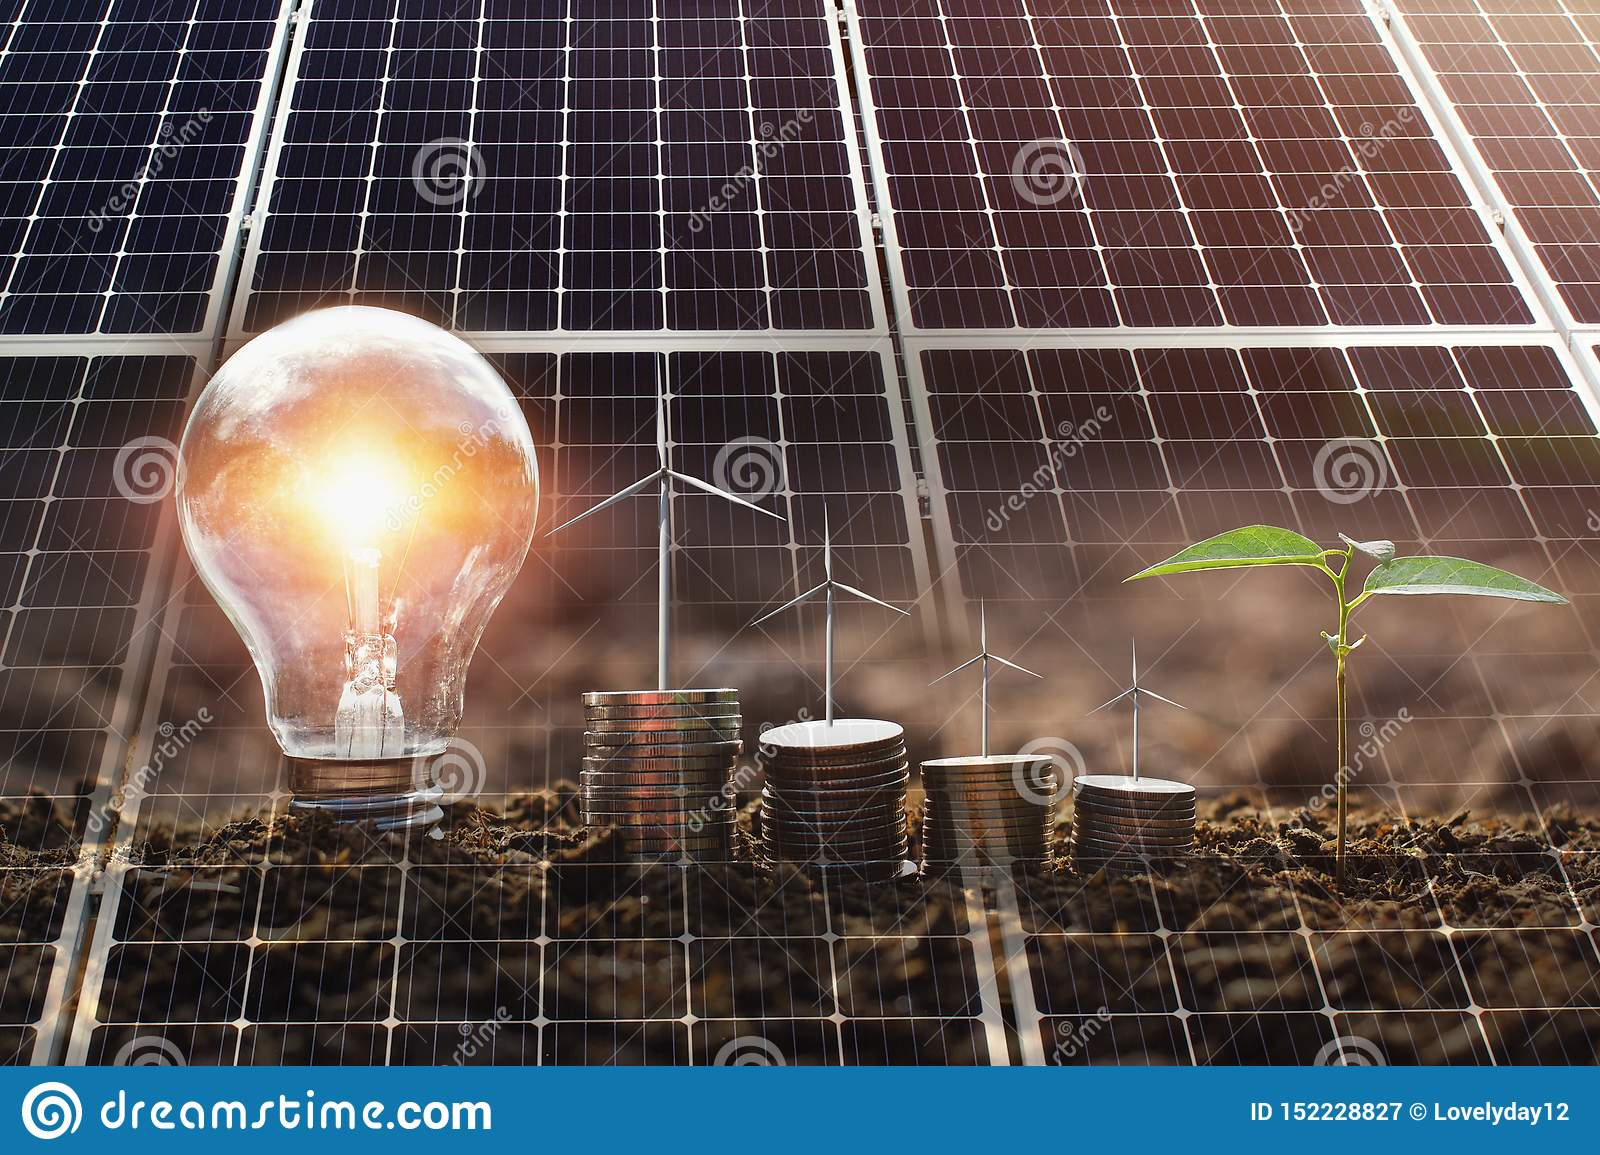 concept clean energy and saving power in nature. solar panel with wind turebine on money and lightbulb